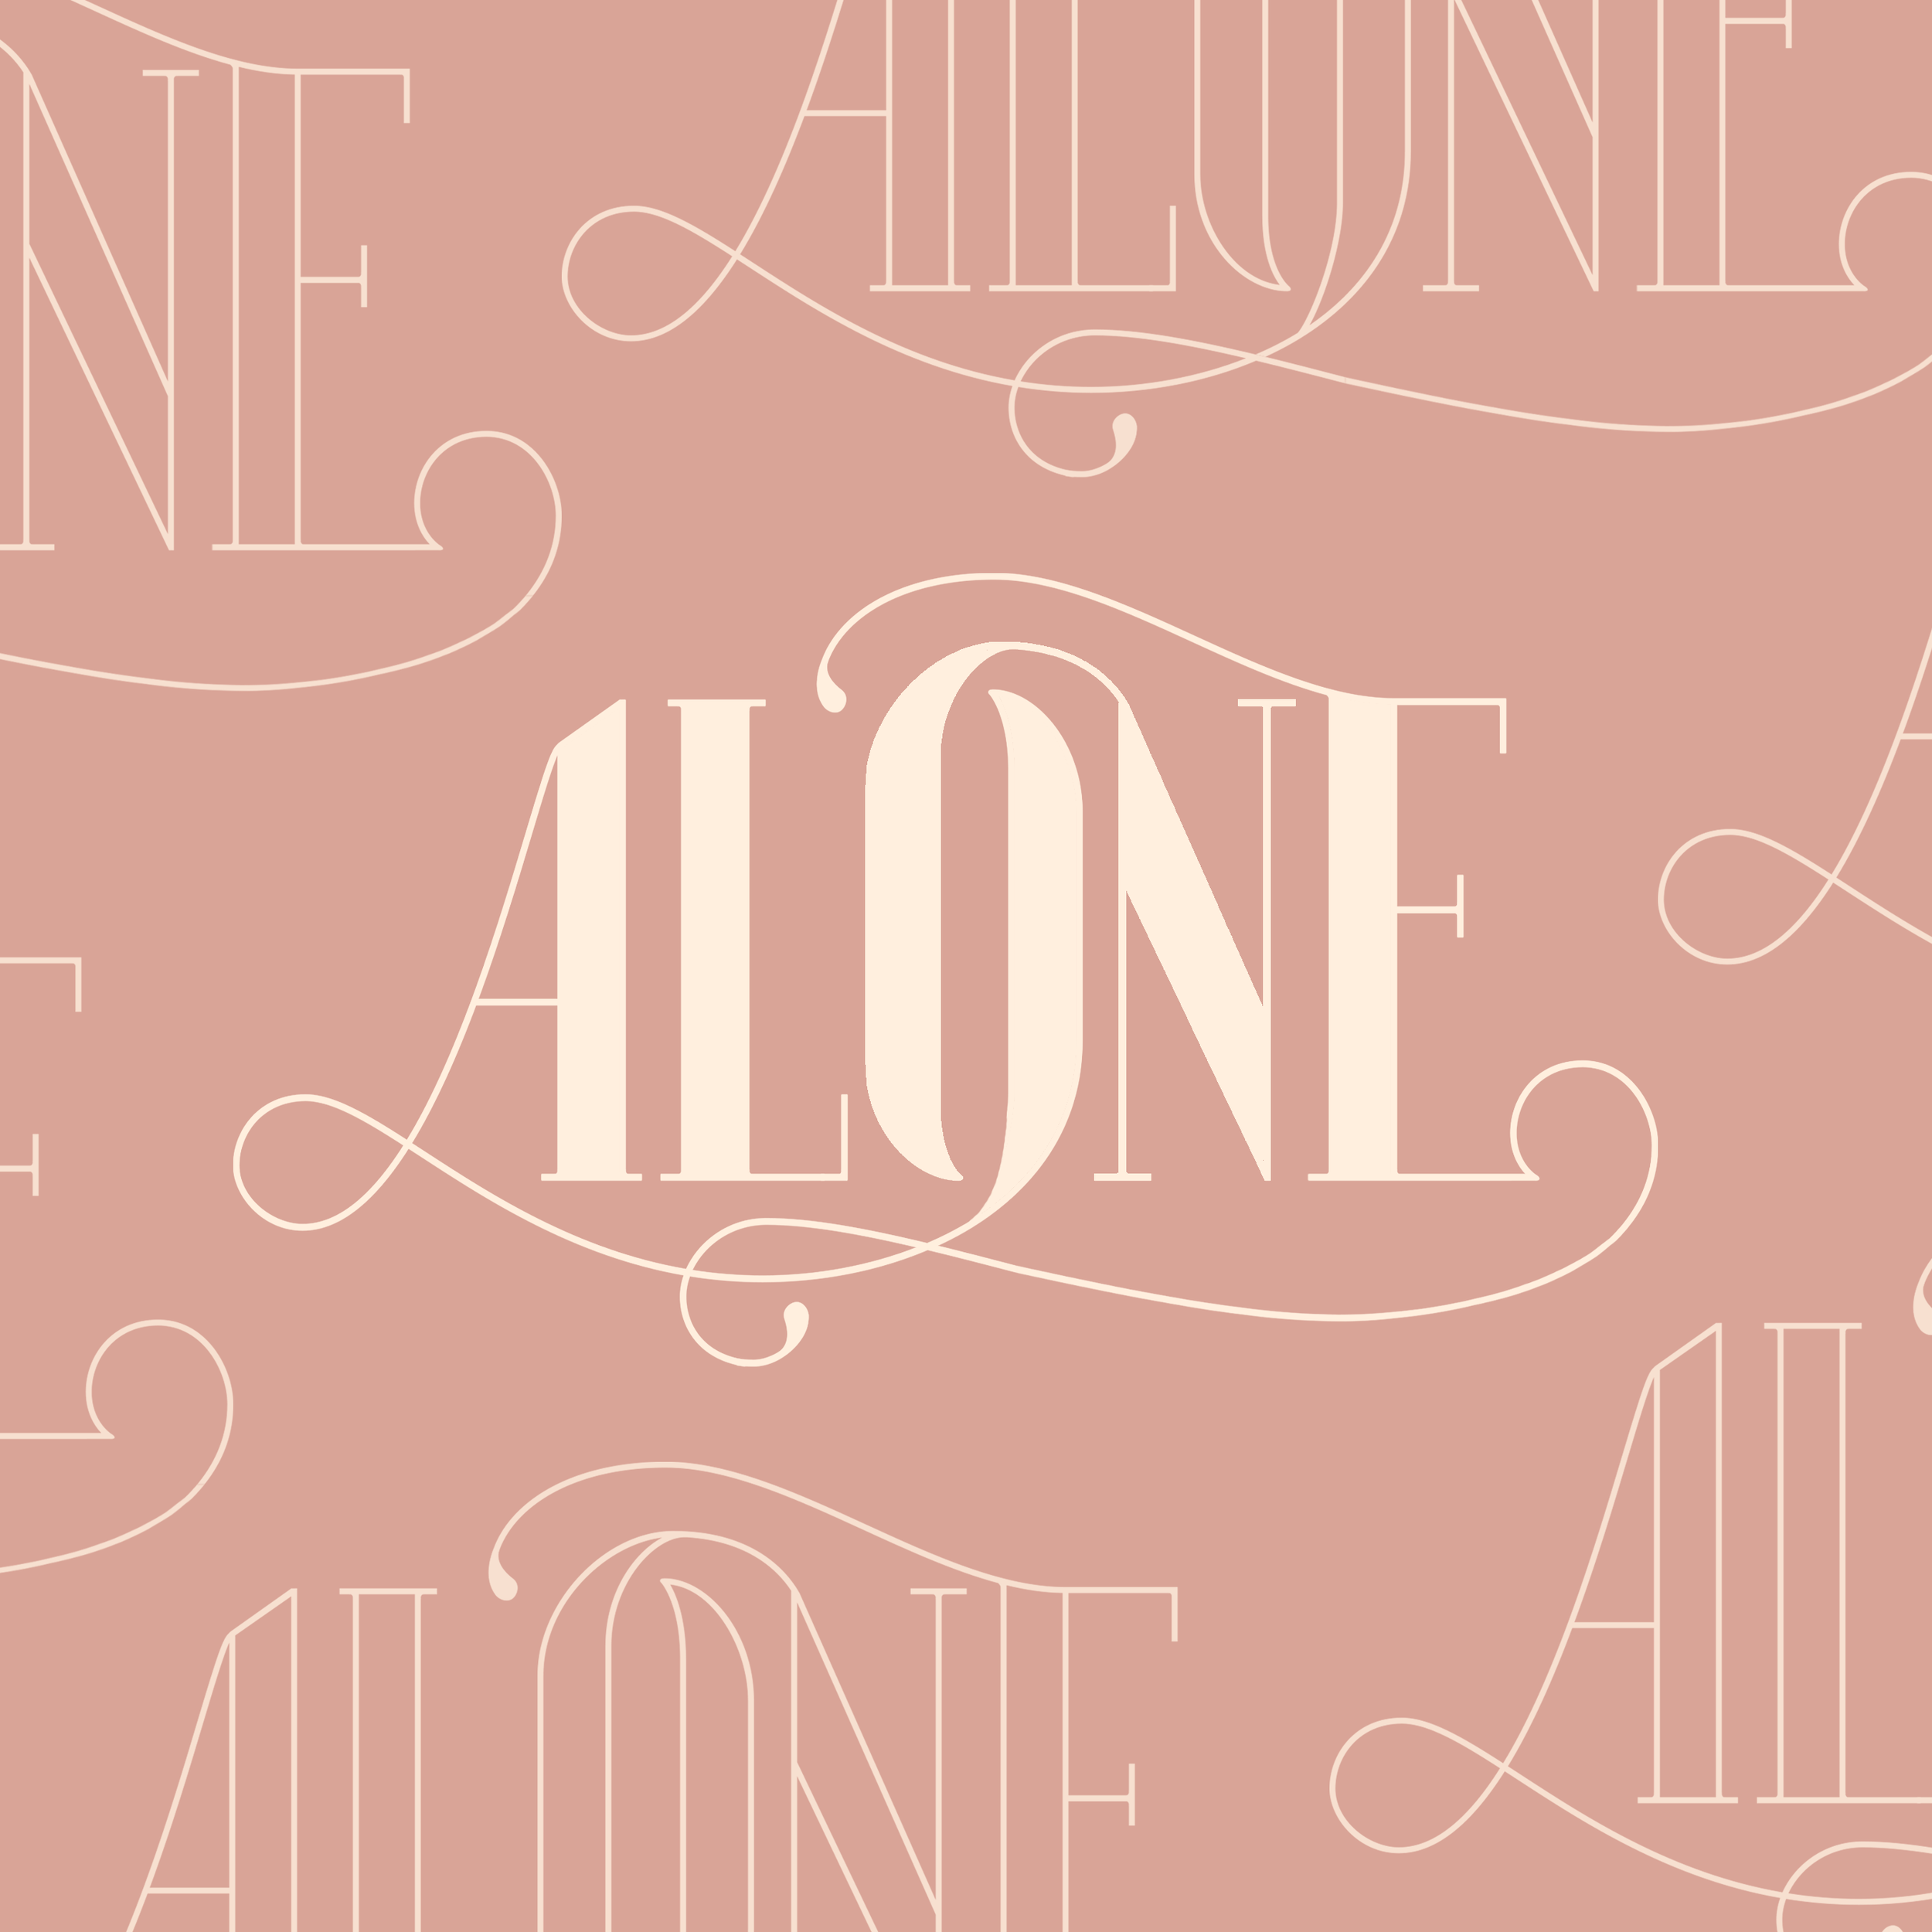 """Alone - Jessie Ware   For my tenth #NewMusicMonday post, I've selected a beautiful track called """"Alone"""" by the remarkable British singer and..."""